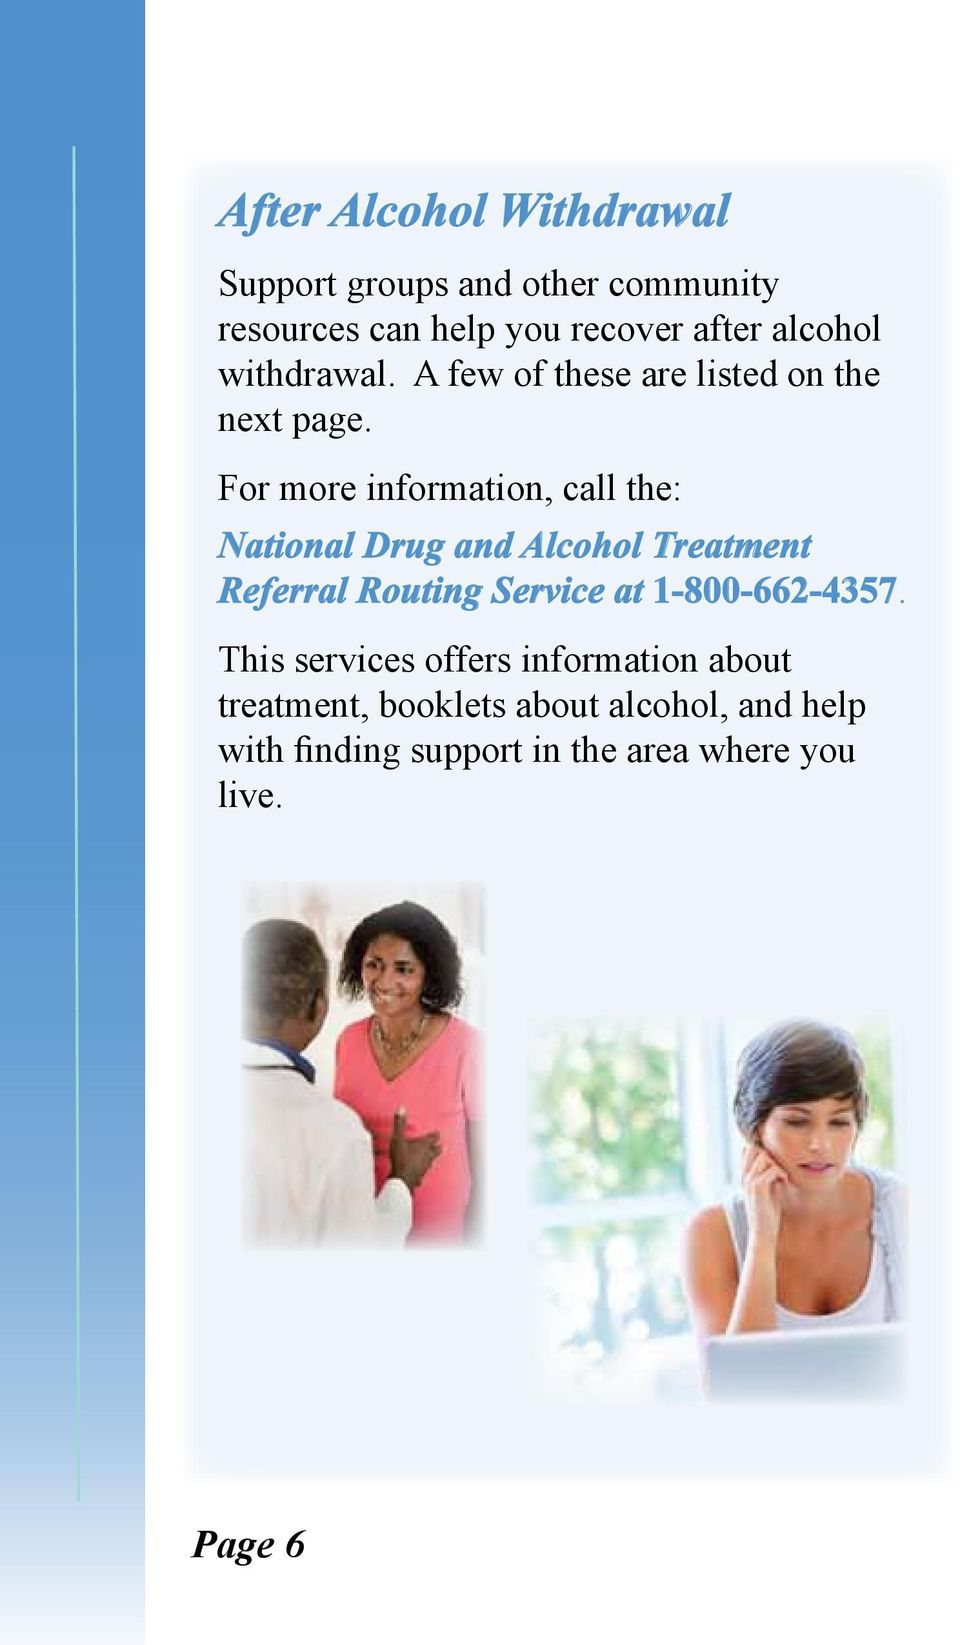 For more information, call the: National Drug and Alcohol Treatment Referral Routing Service at